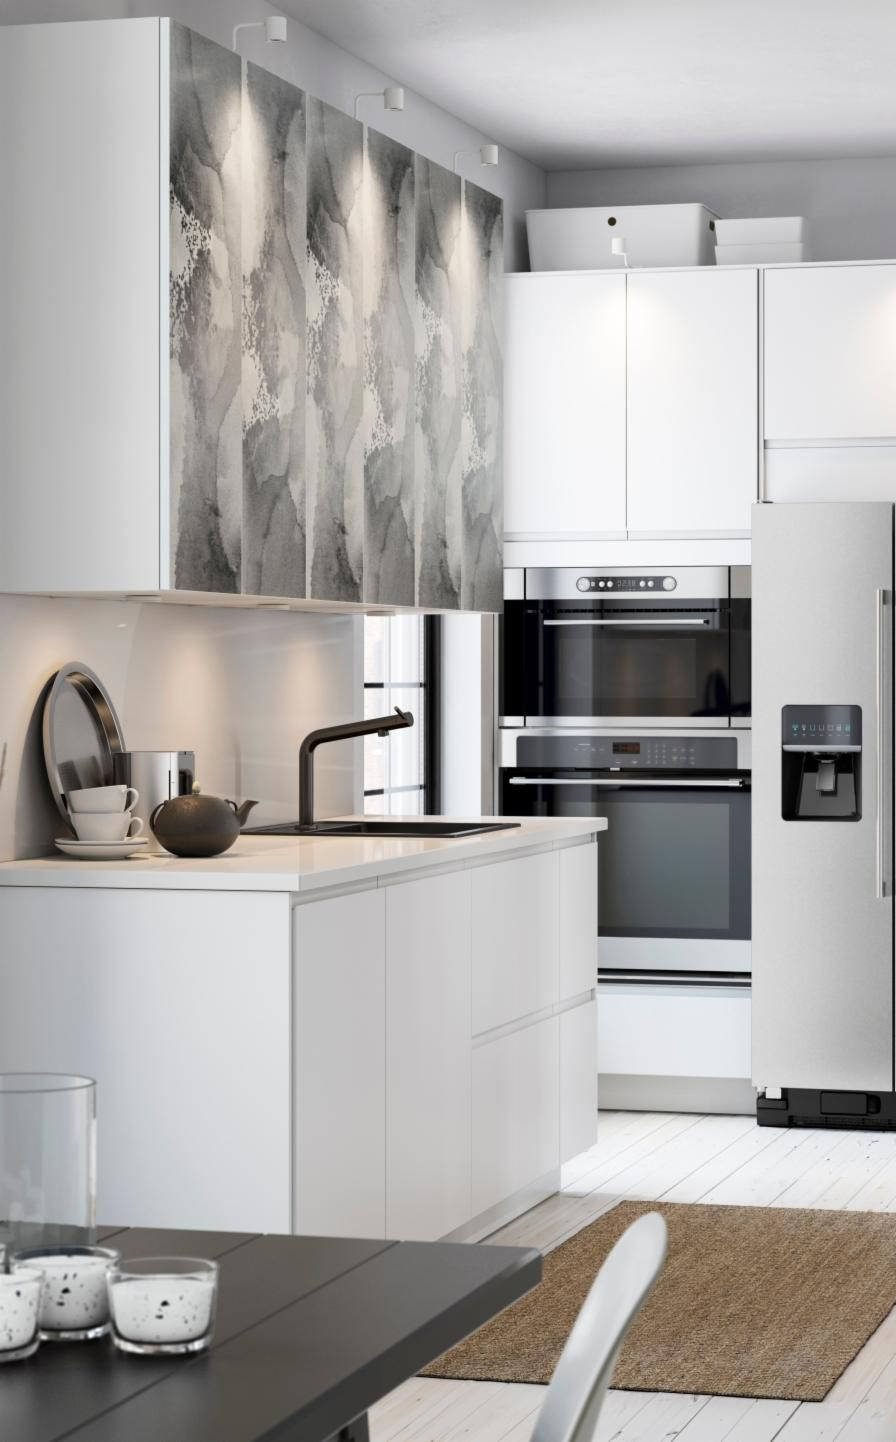 Best Ikea Sektion Kitchens Are Designed To Give You The Freedom 400 x 300